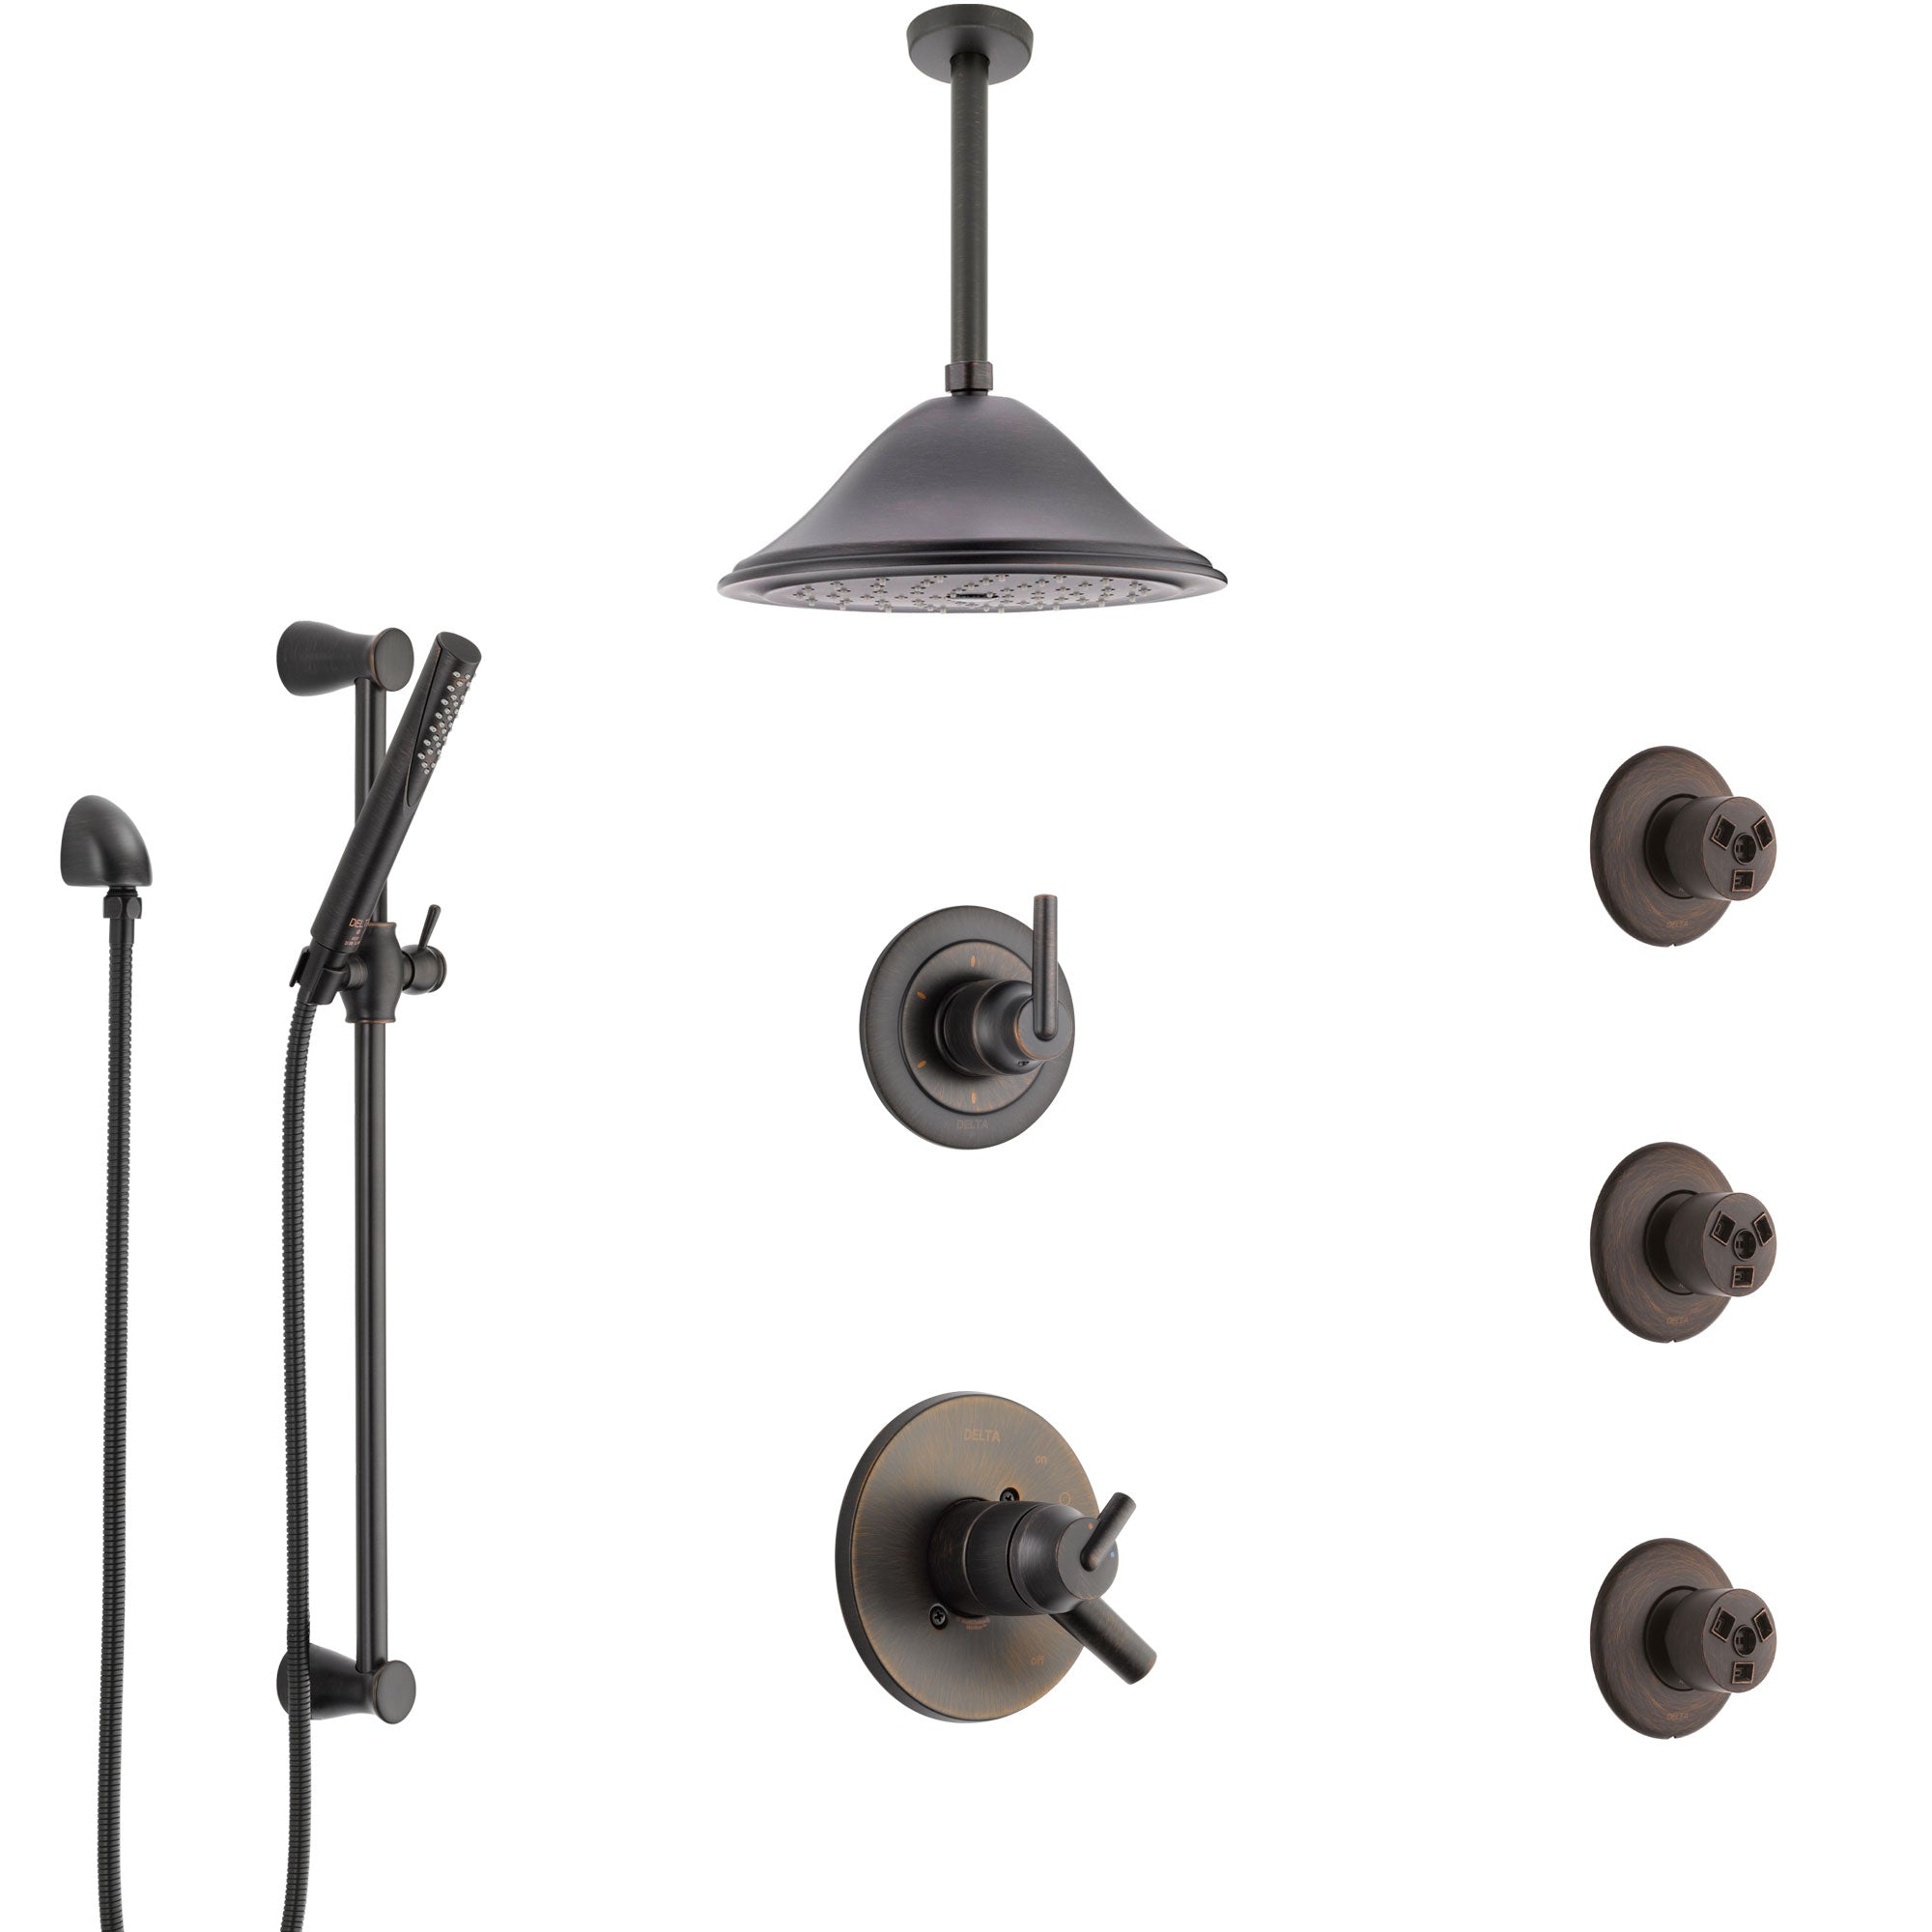 Delta Trinsic Venetian Bronze Shower System with Dual Thermostatic Control, Diverter, Ceiling Showerhead, 3 Body Sprays, and Hand Shower SS17T591RB7